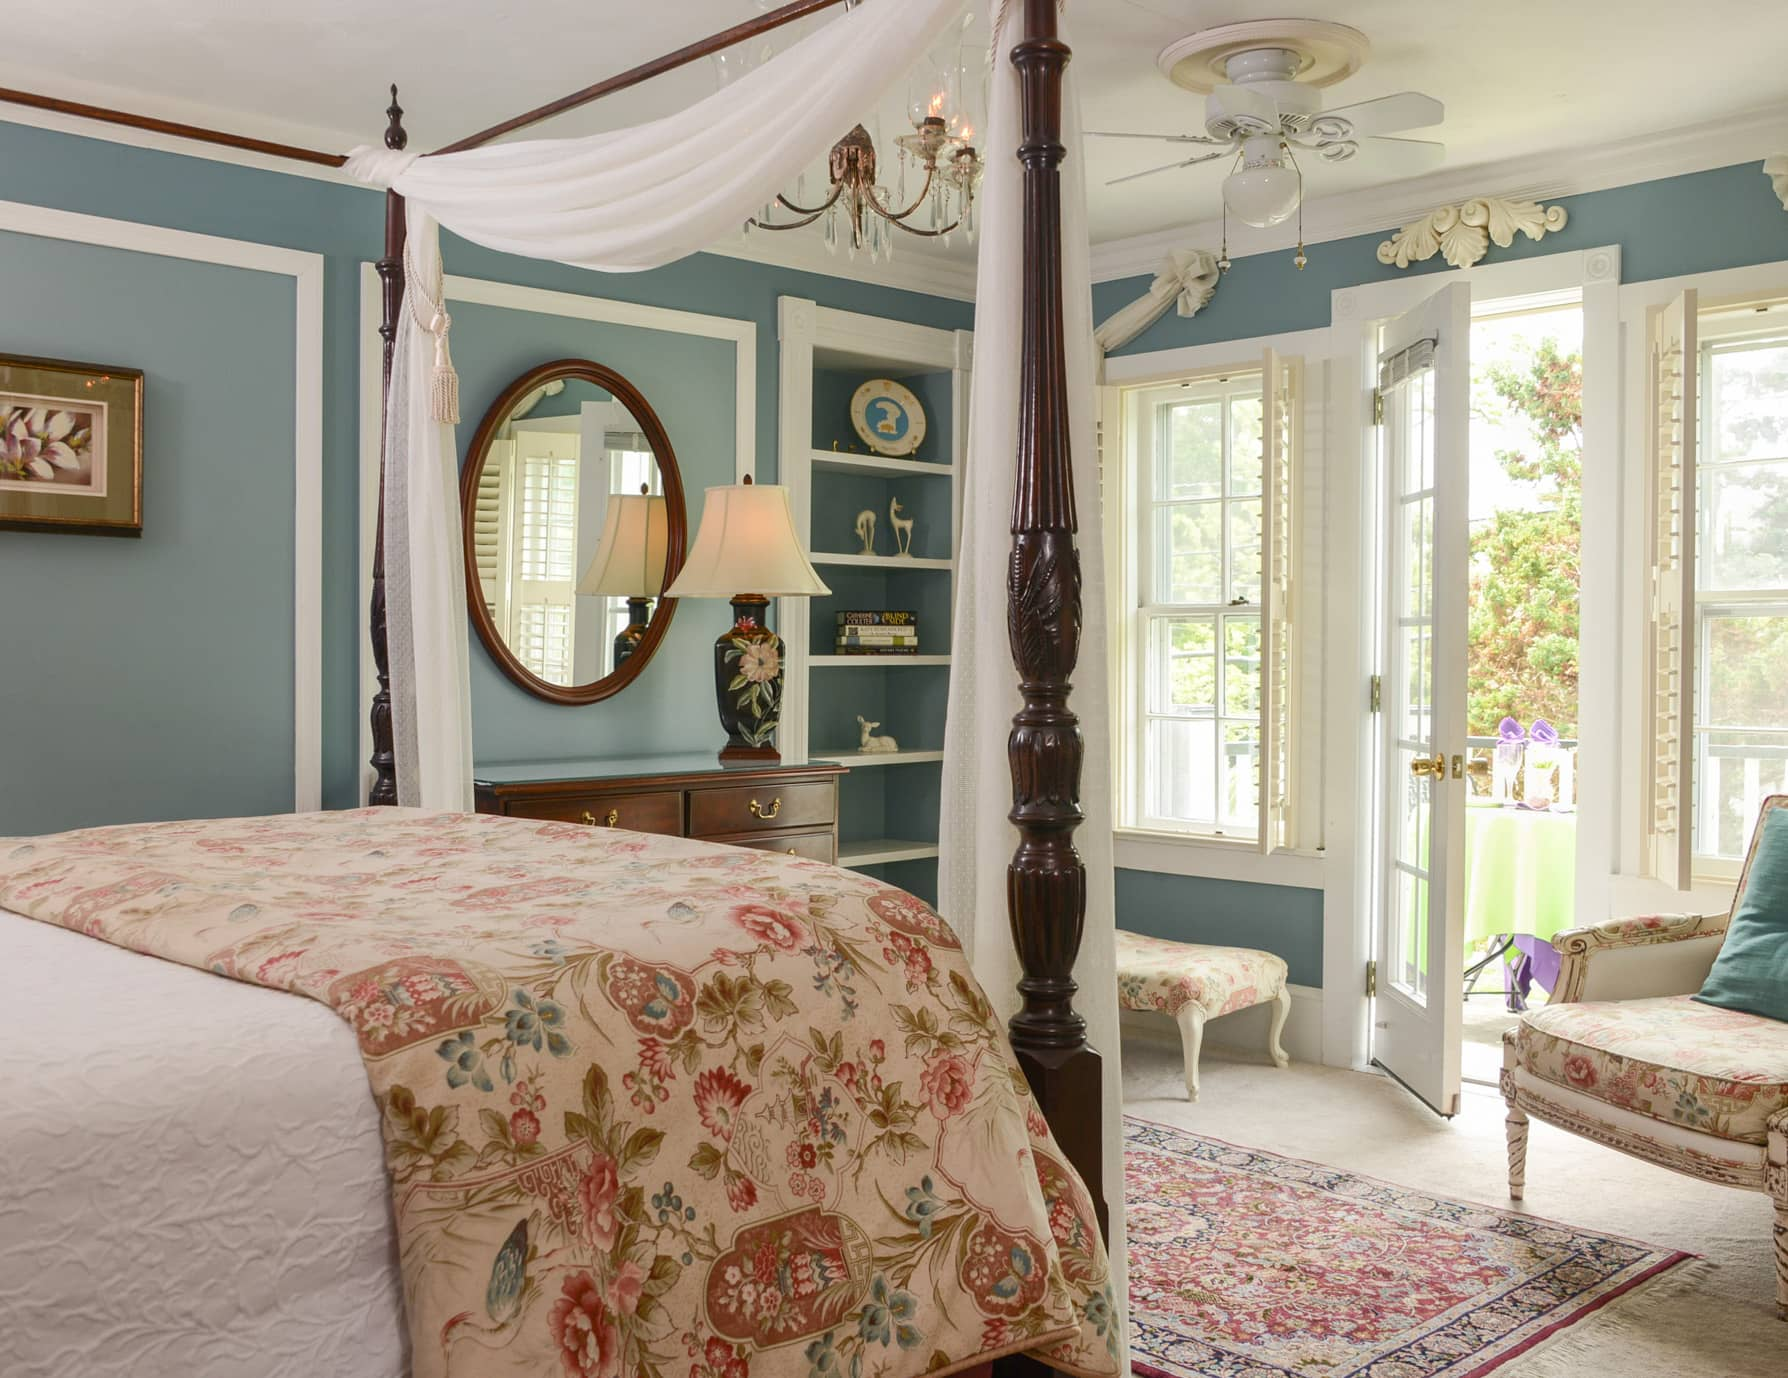 Roanoke Island B&B Queen Room with Private Patio